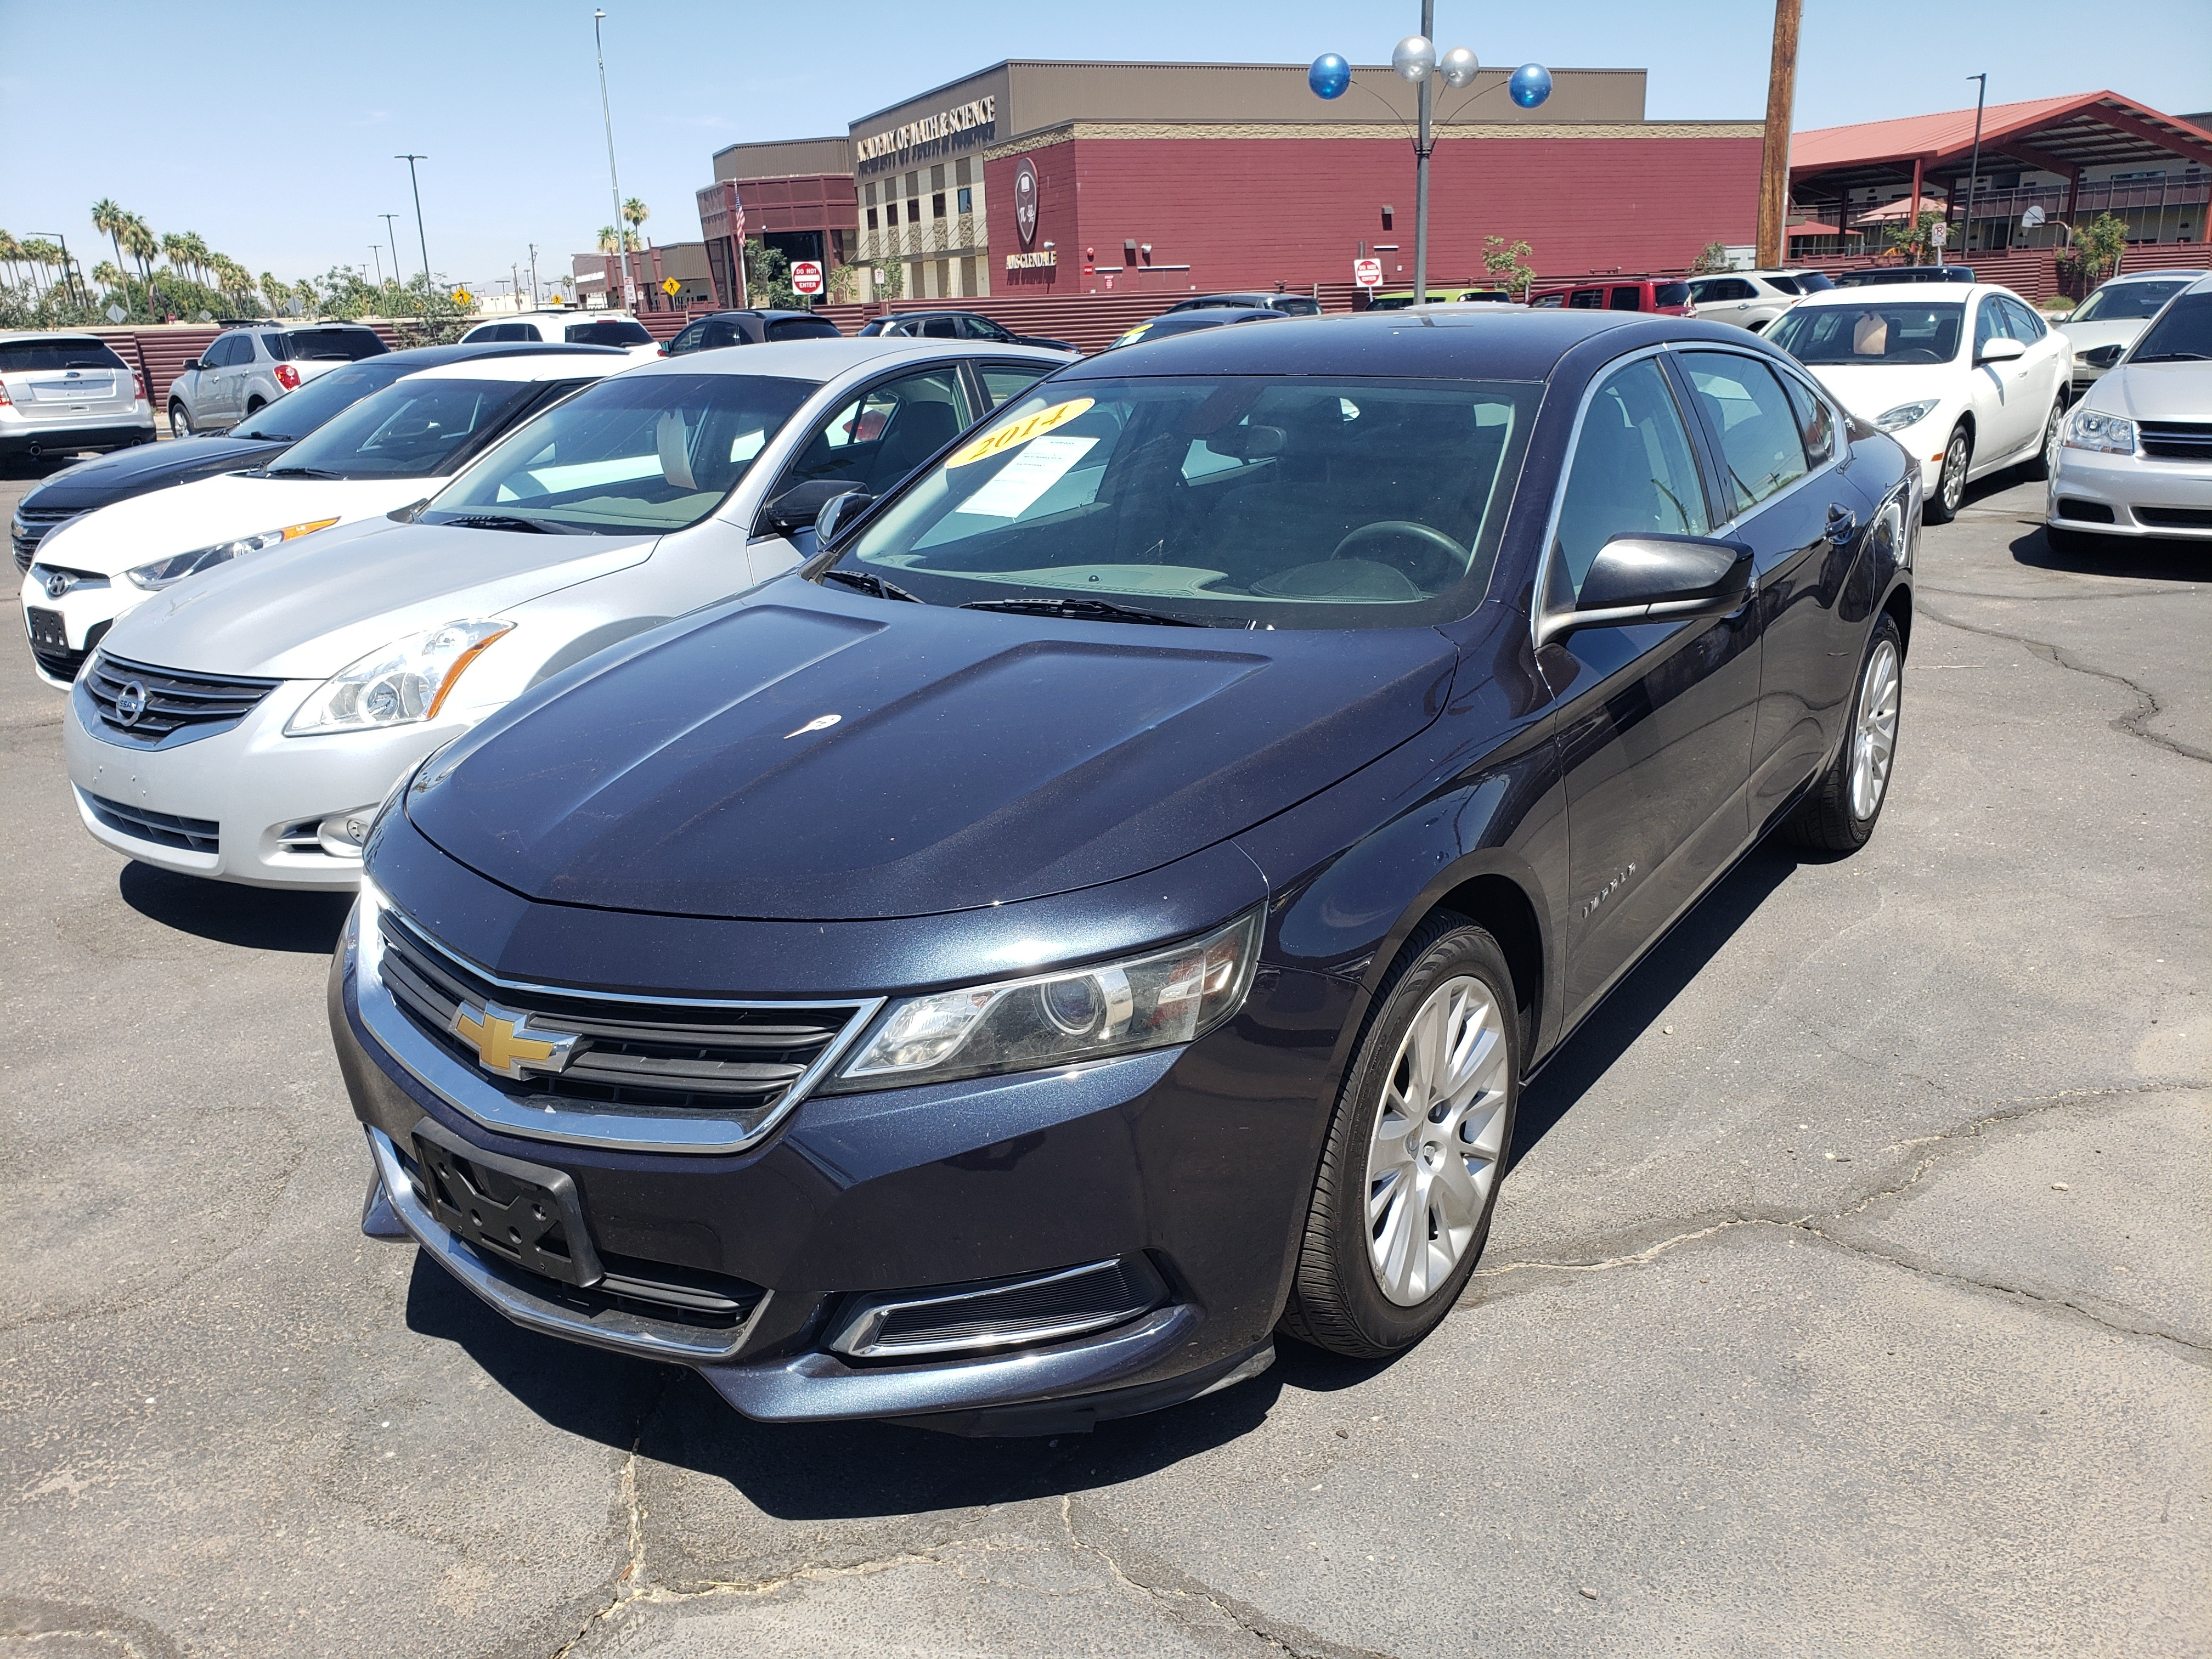 Pre-Owned 2014 Chevrolet IMPALA 4 DOOR SEDAN